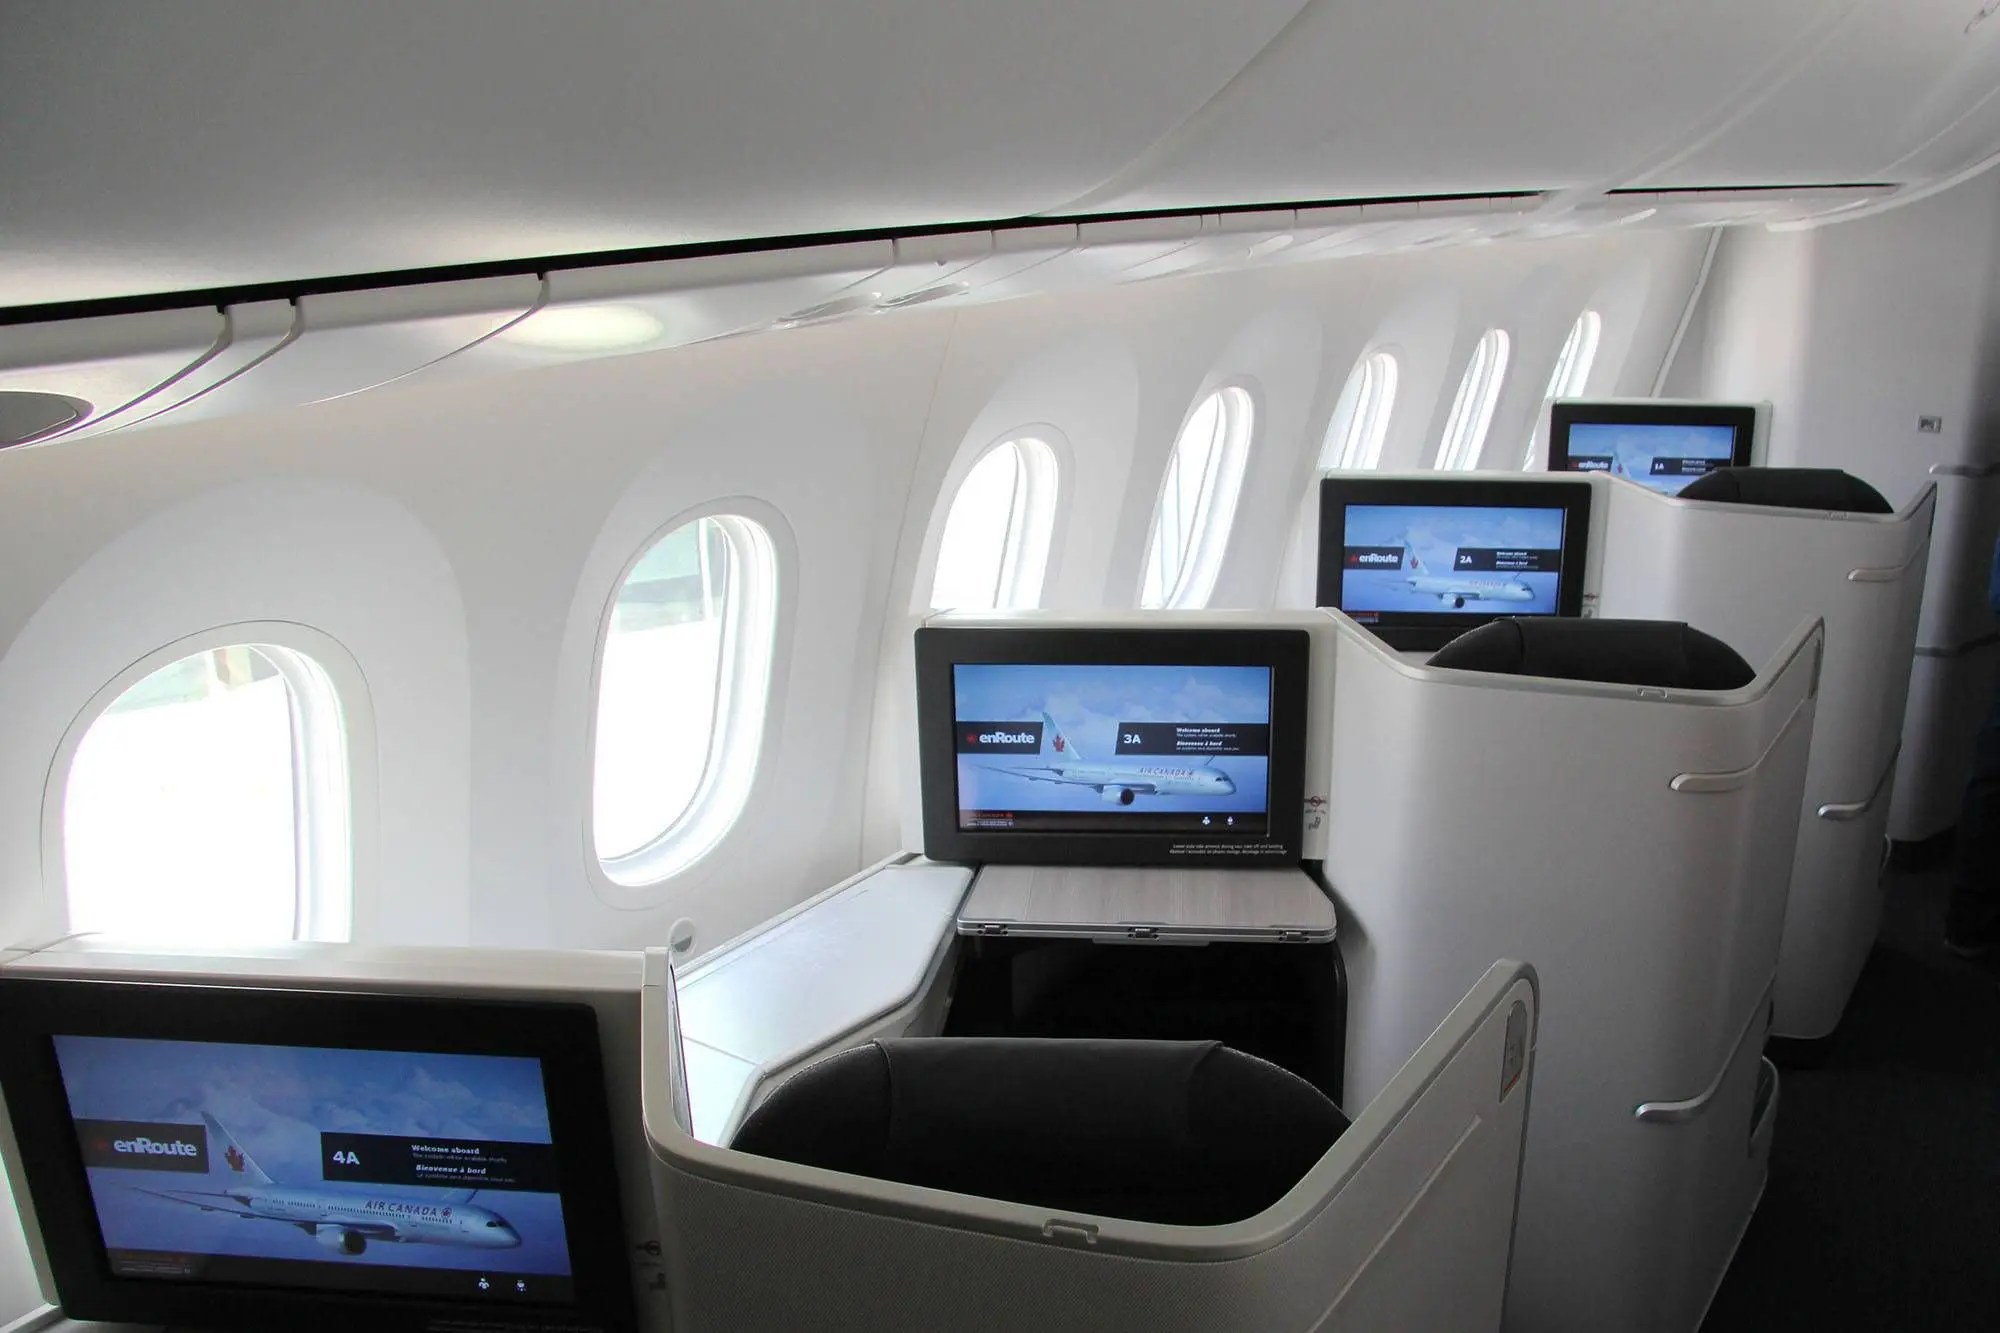 Air Canada's new International Business Class cabin on the 787 Dreamliner. (CNW Group/Air Canada)